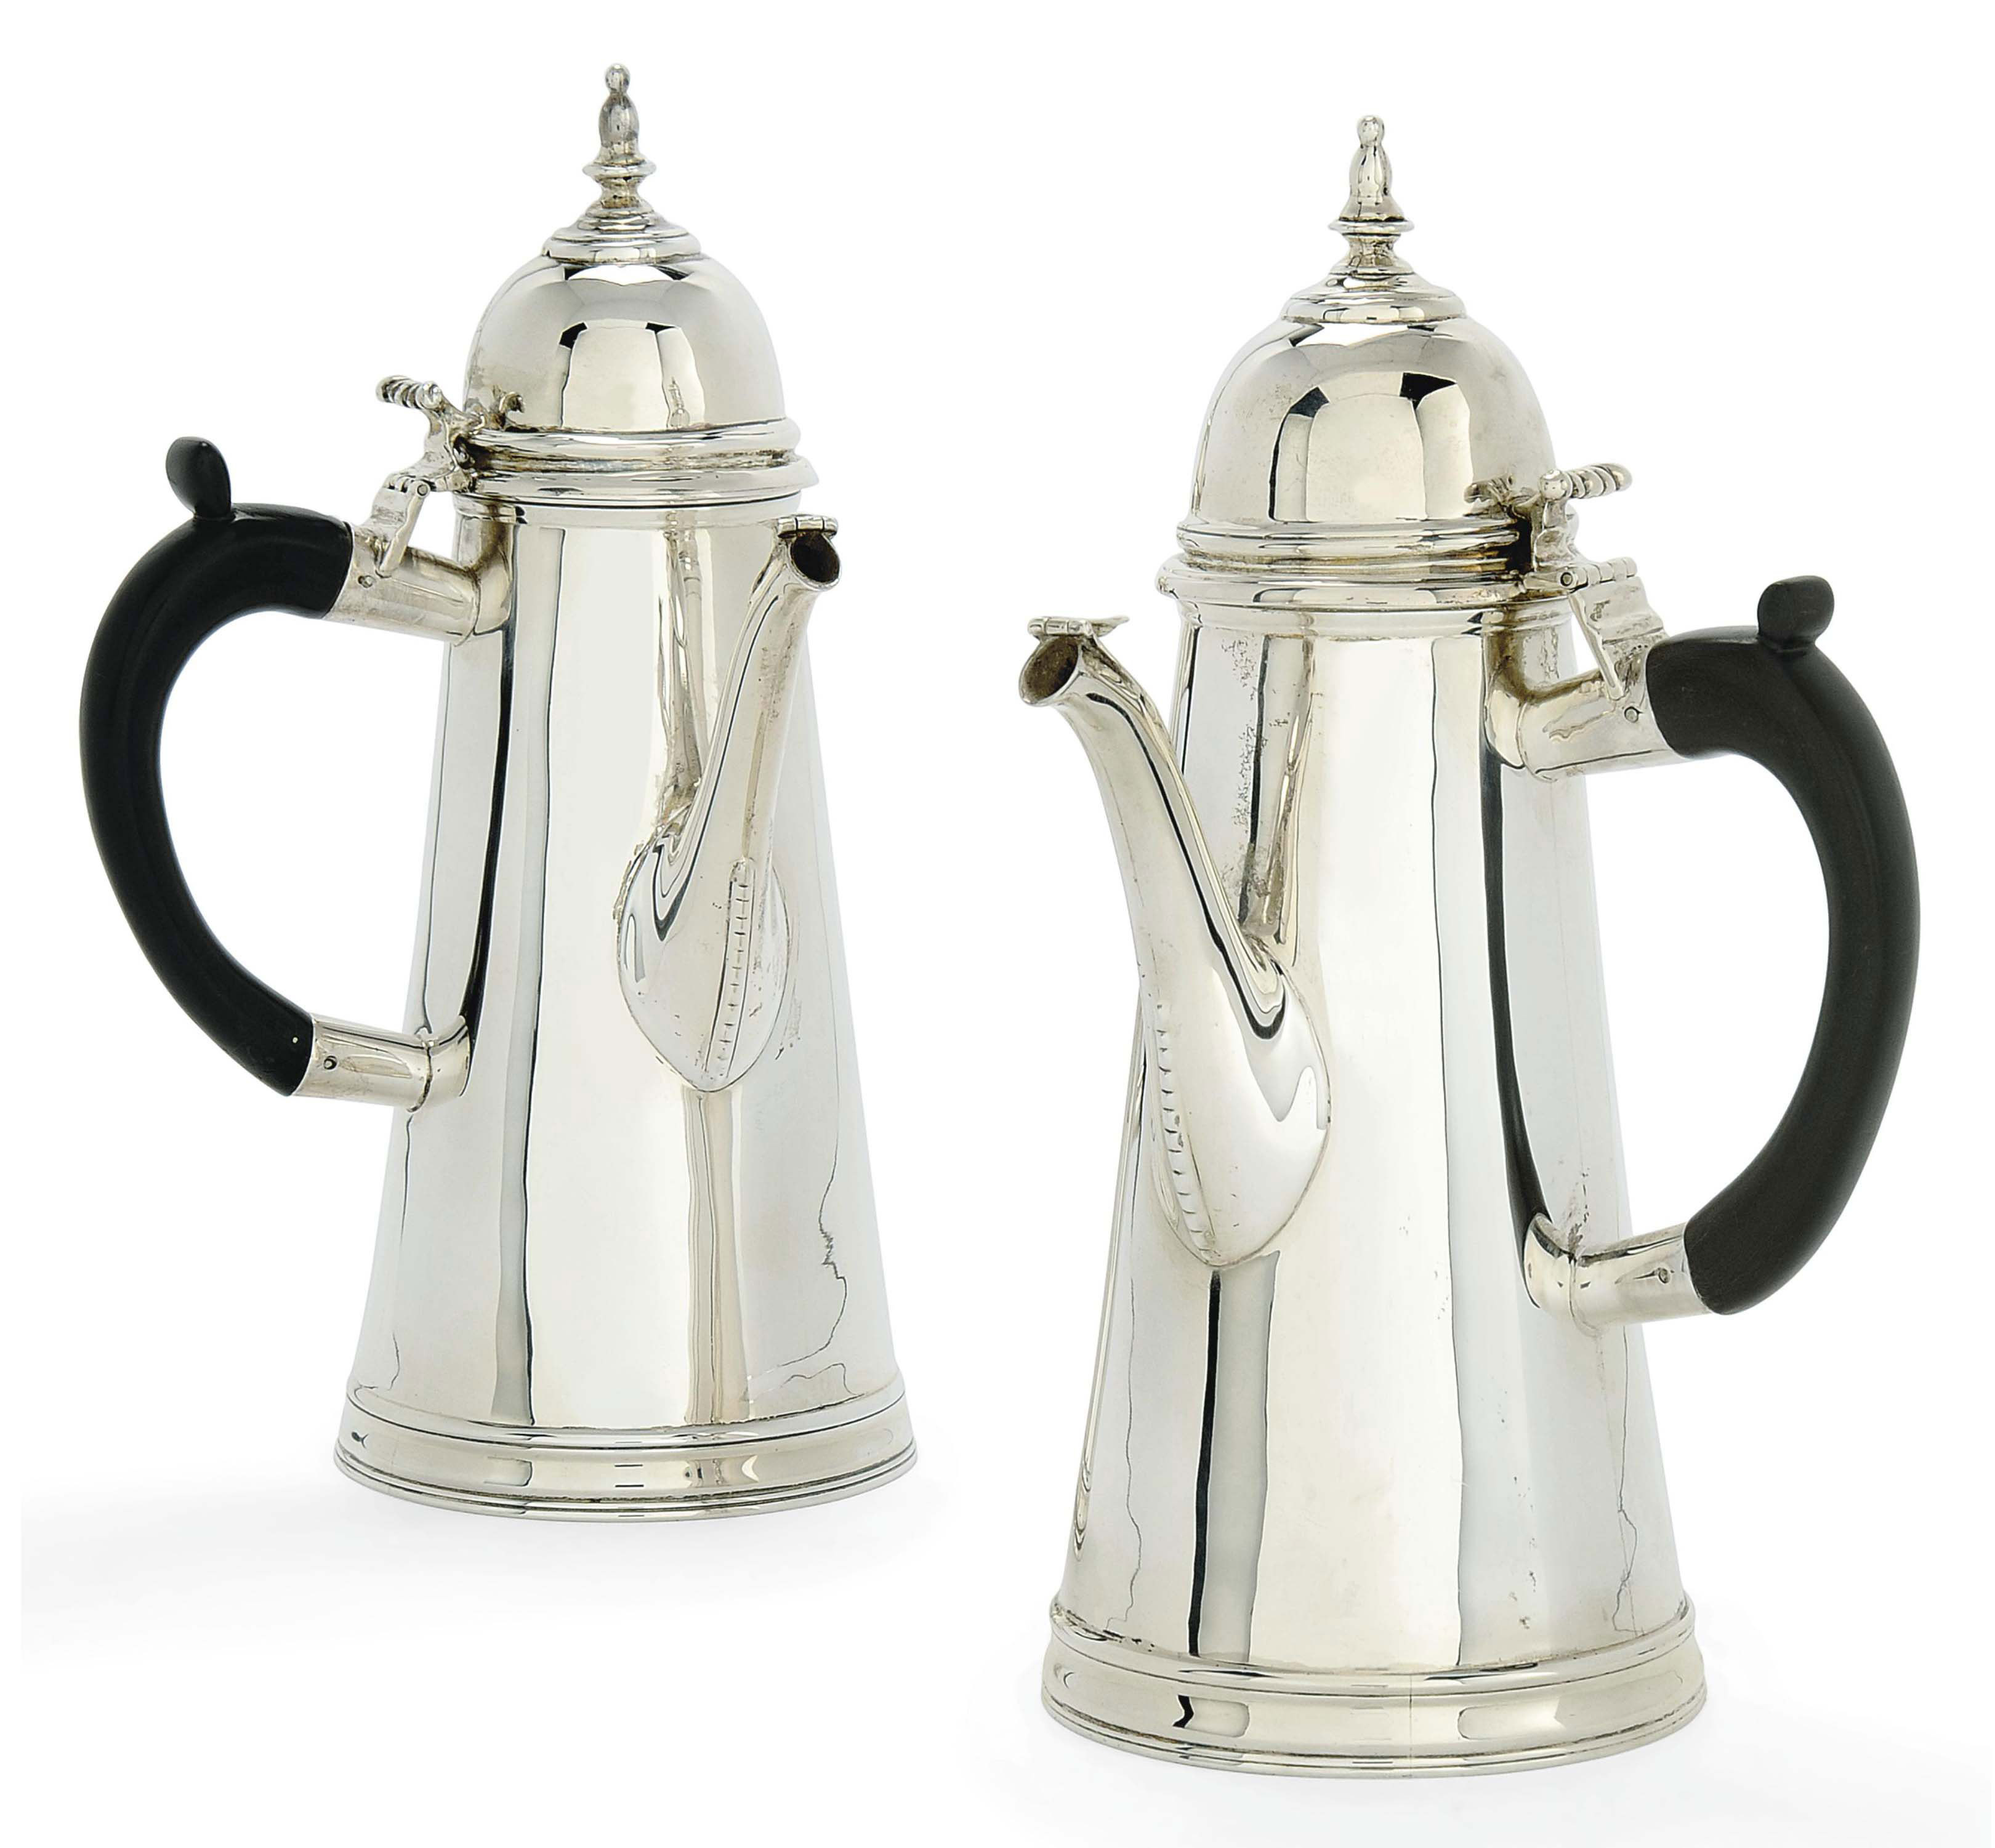 A PAIR OF IRISH SILVER CAFE-AU-LAIT POTS OF QUEEN ANNE STYLE